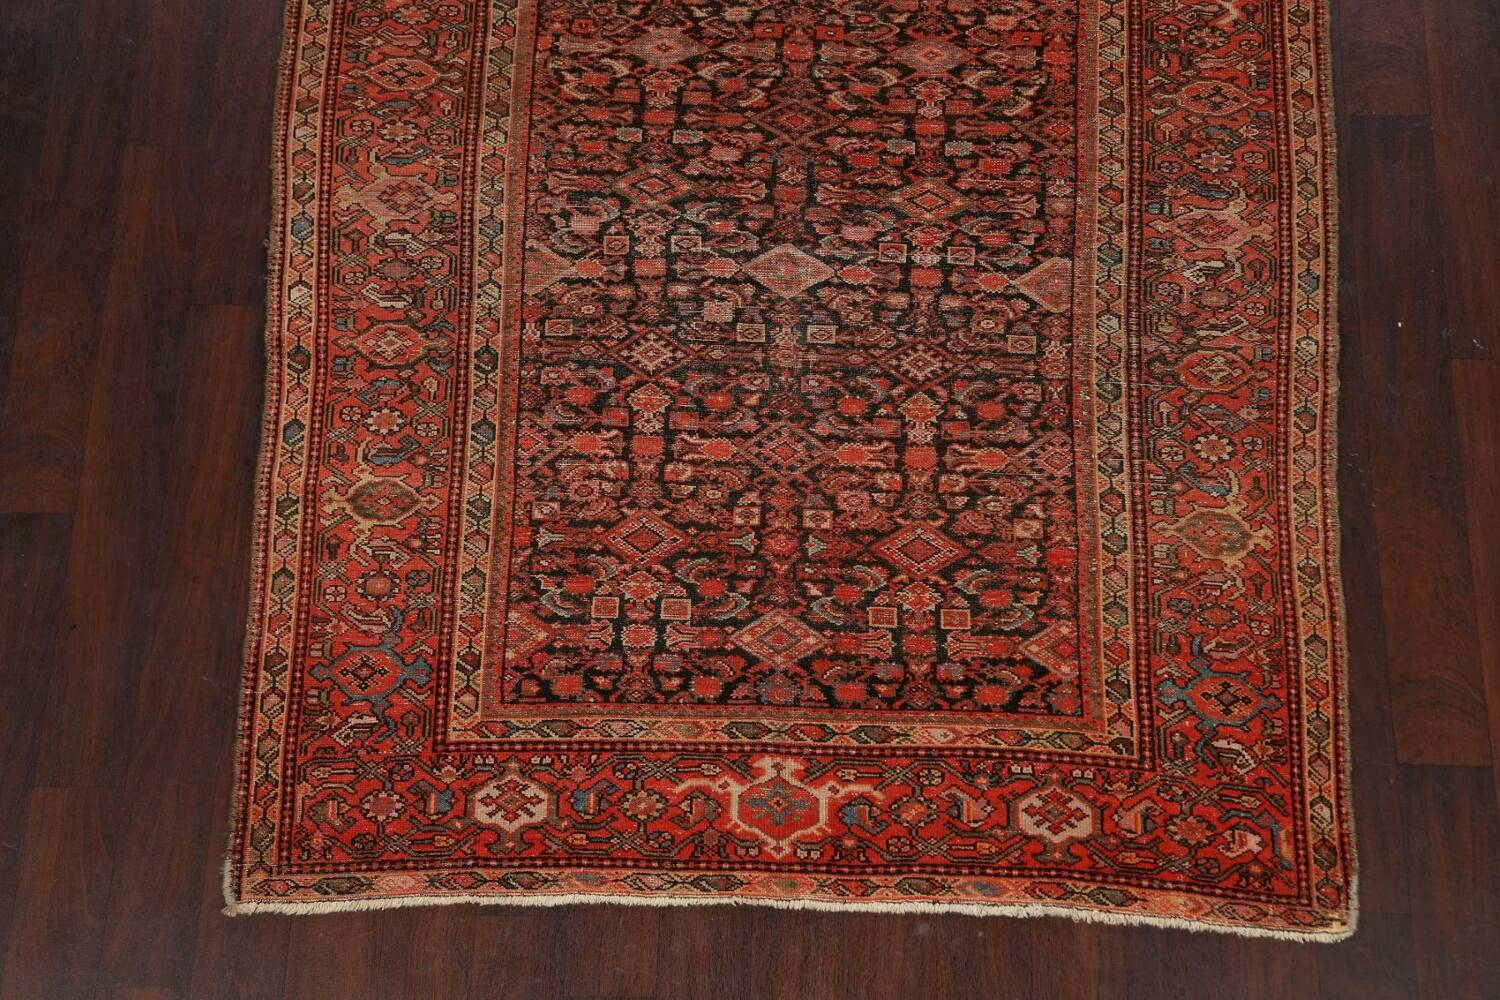 Pre-1900 Antique Vegetable Dye Malayer Persian Area Rug 5x10 image 8